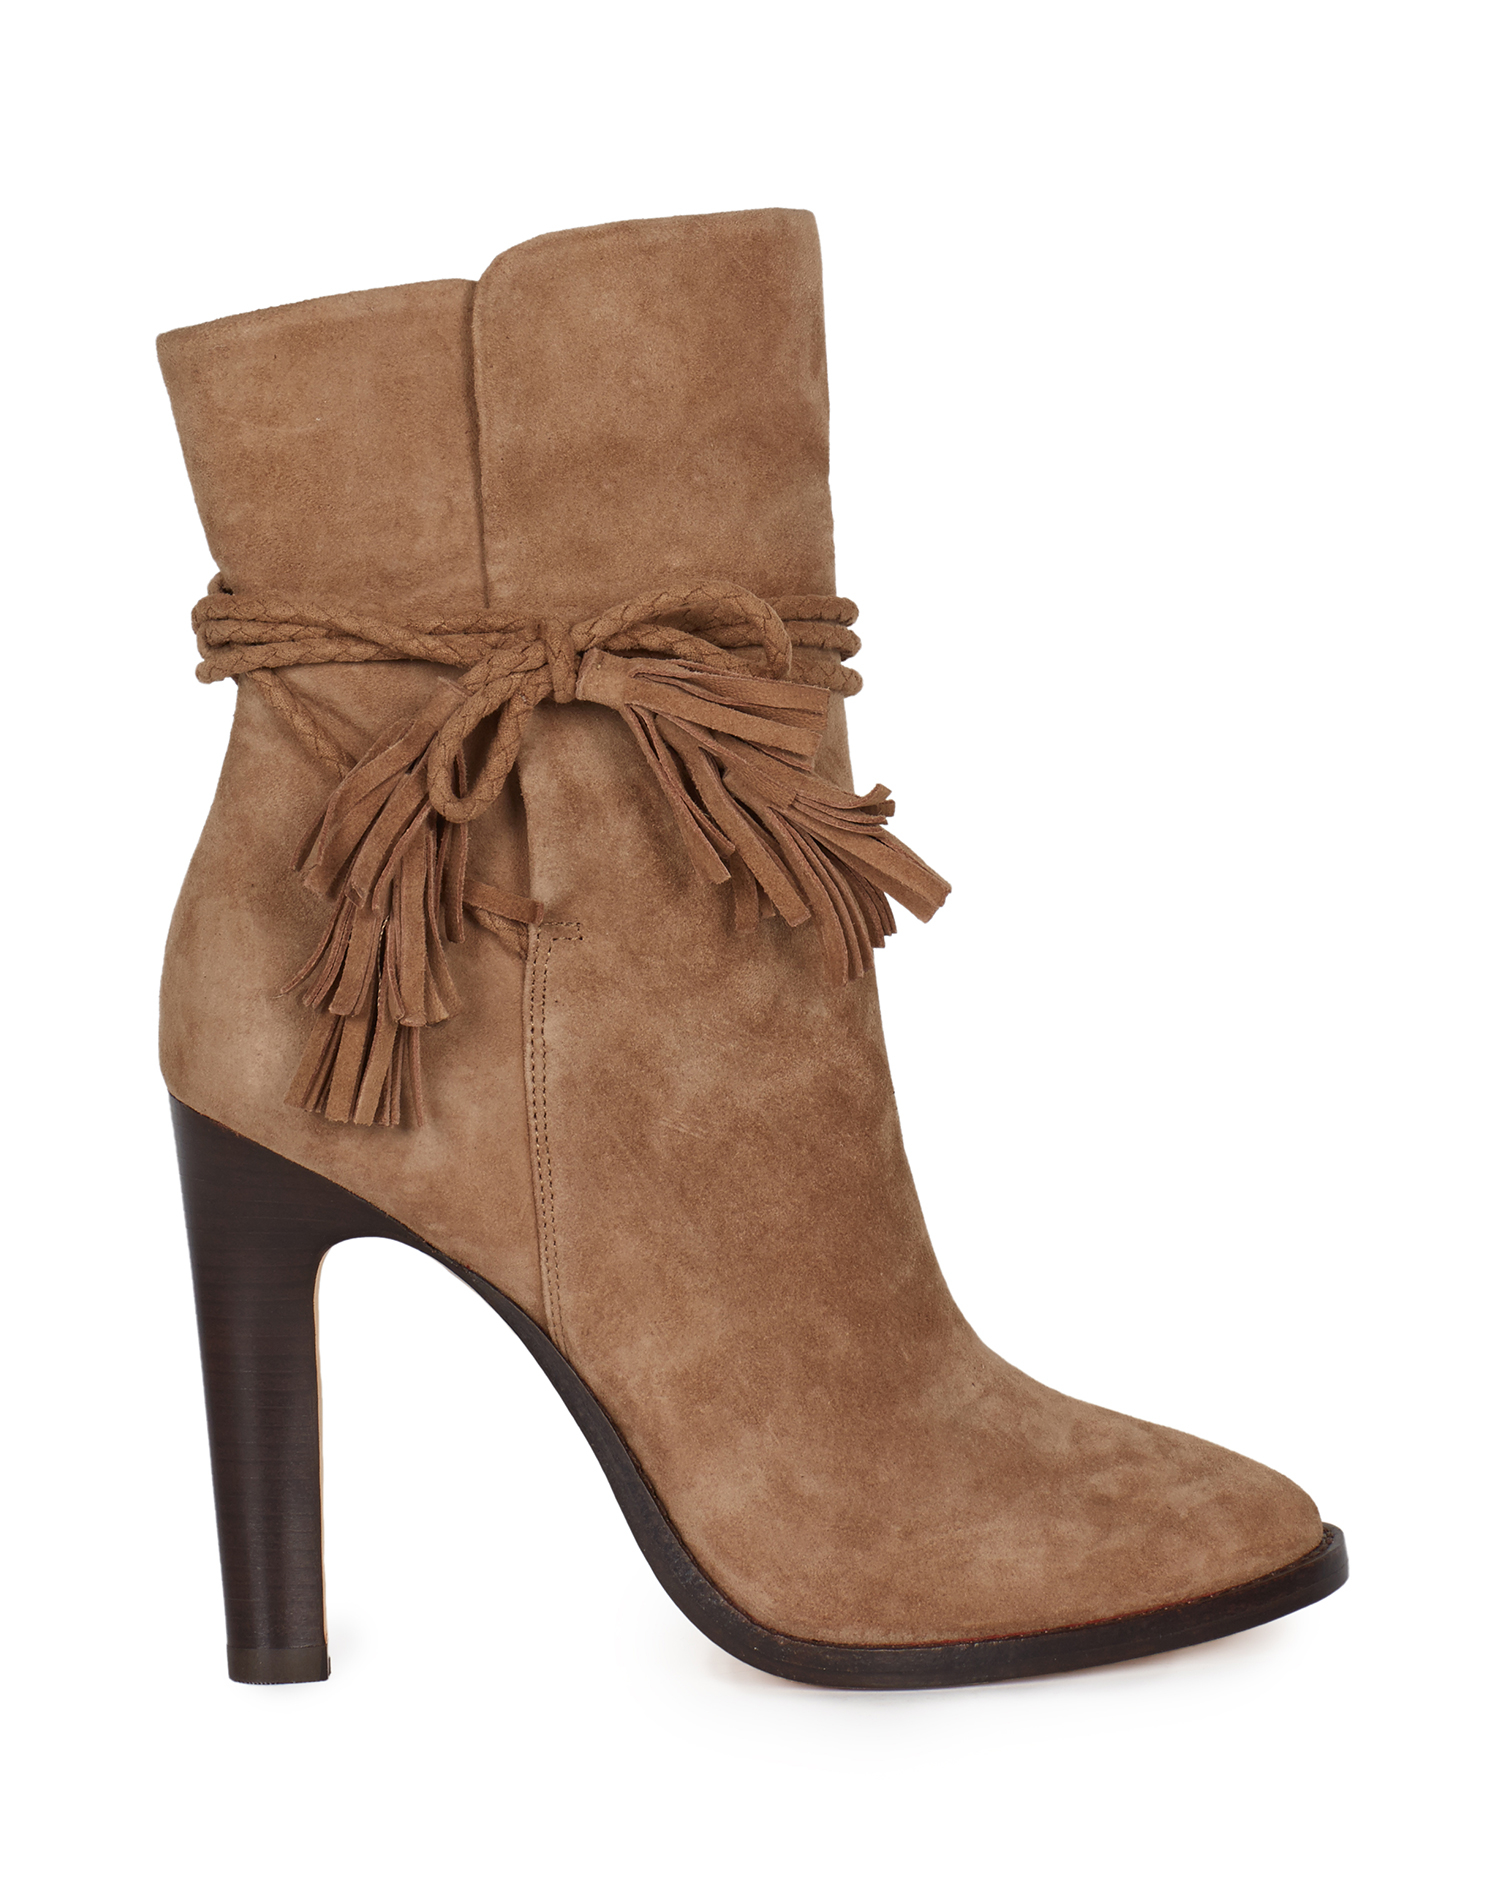 Joie Chap Suede Bootie in Brown